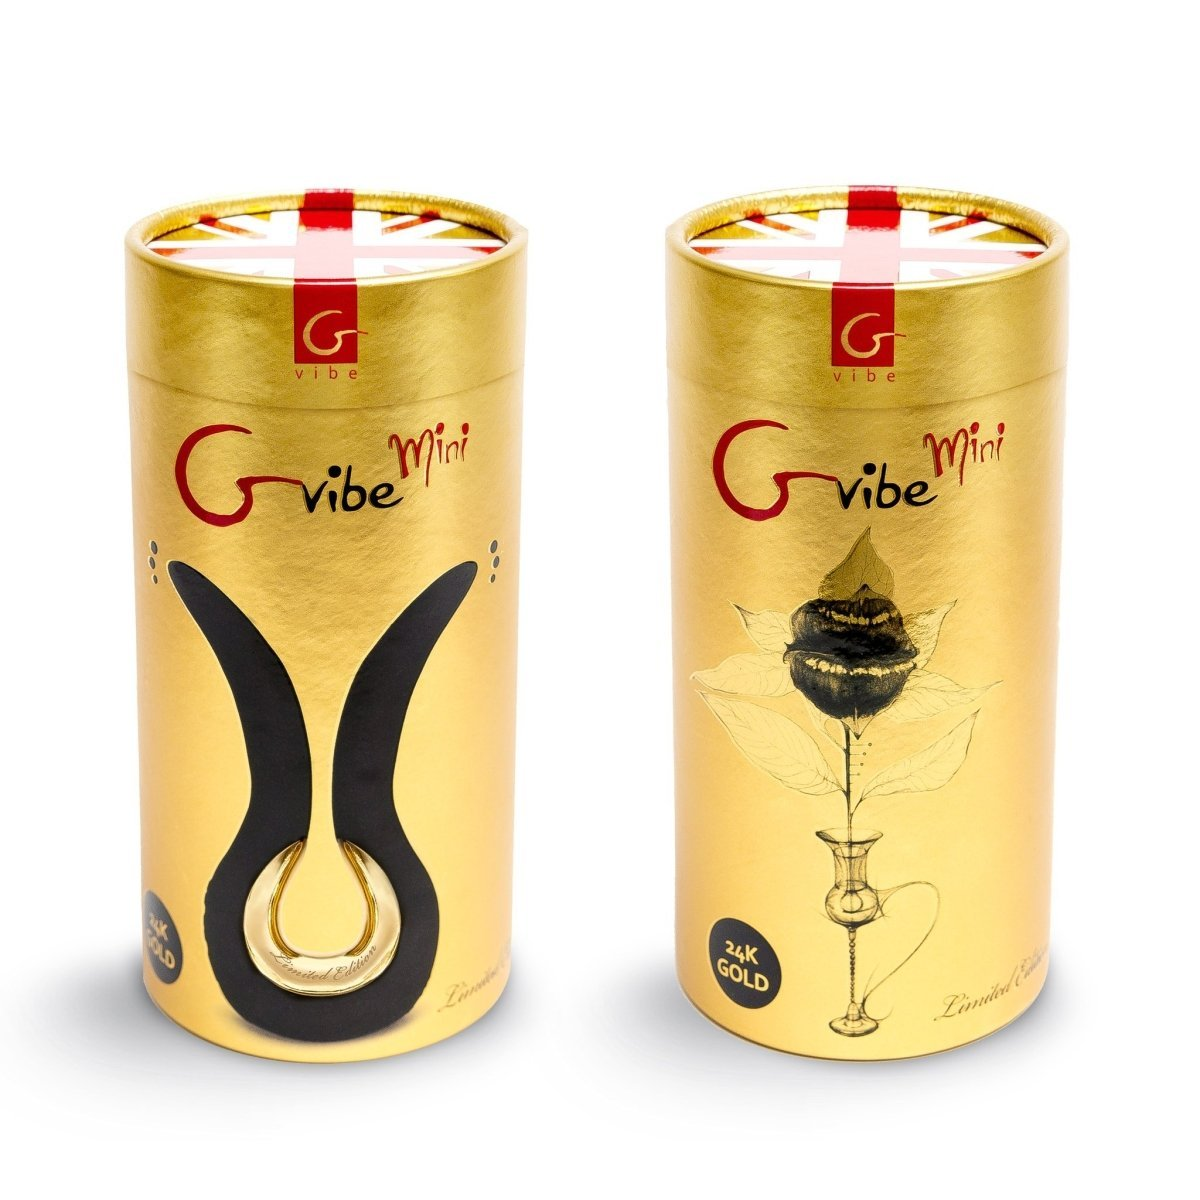 Gvibe MINI GOLD – Double Vibrator To Stimulate The Clitoris, Vagina And Anus - Buy Sex Toys Gvibe.com